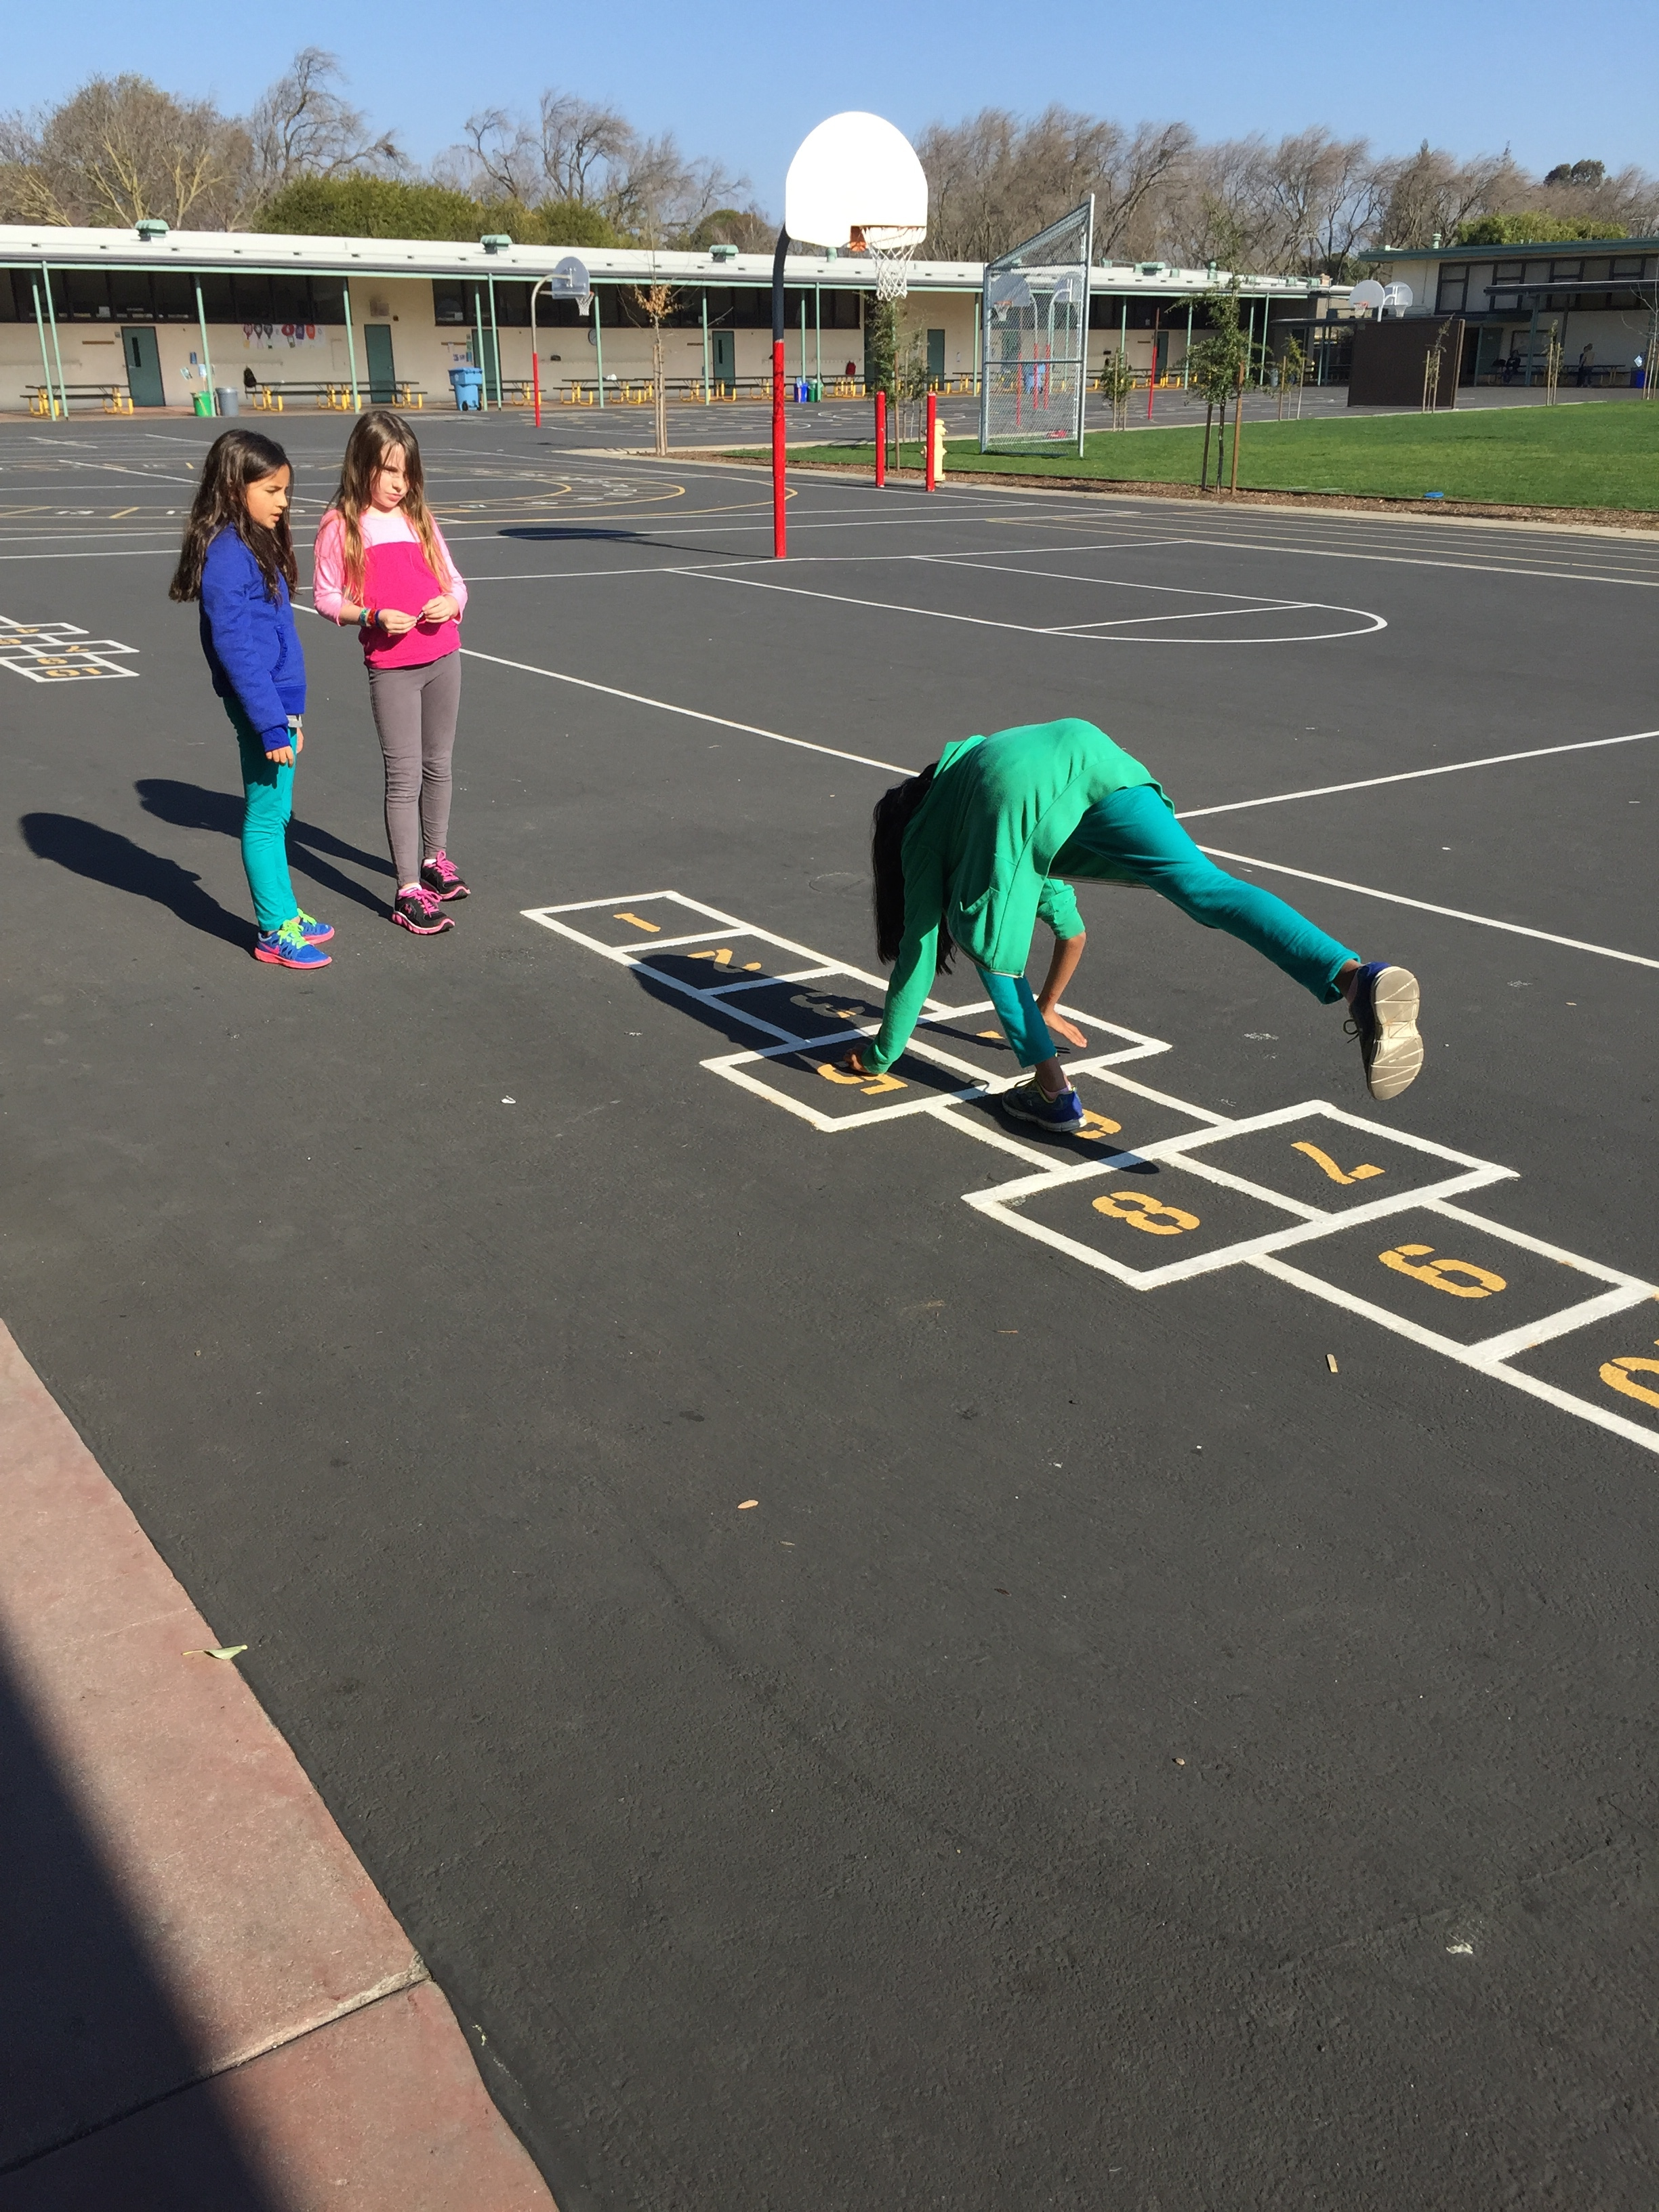 Hop scotch today for break.